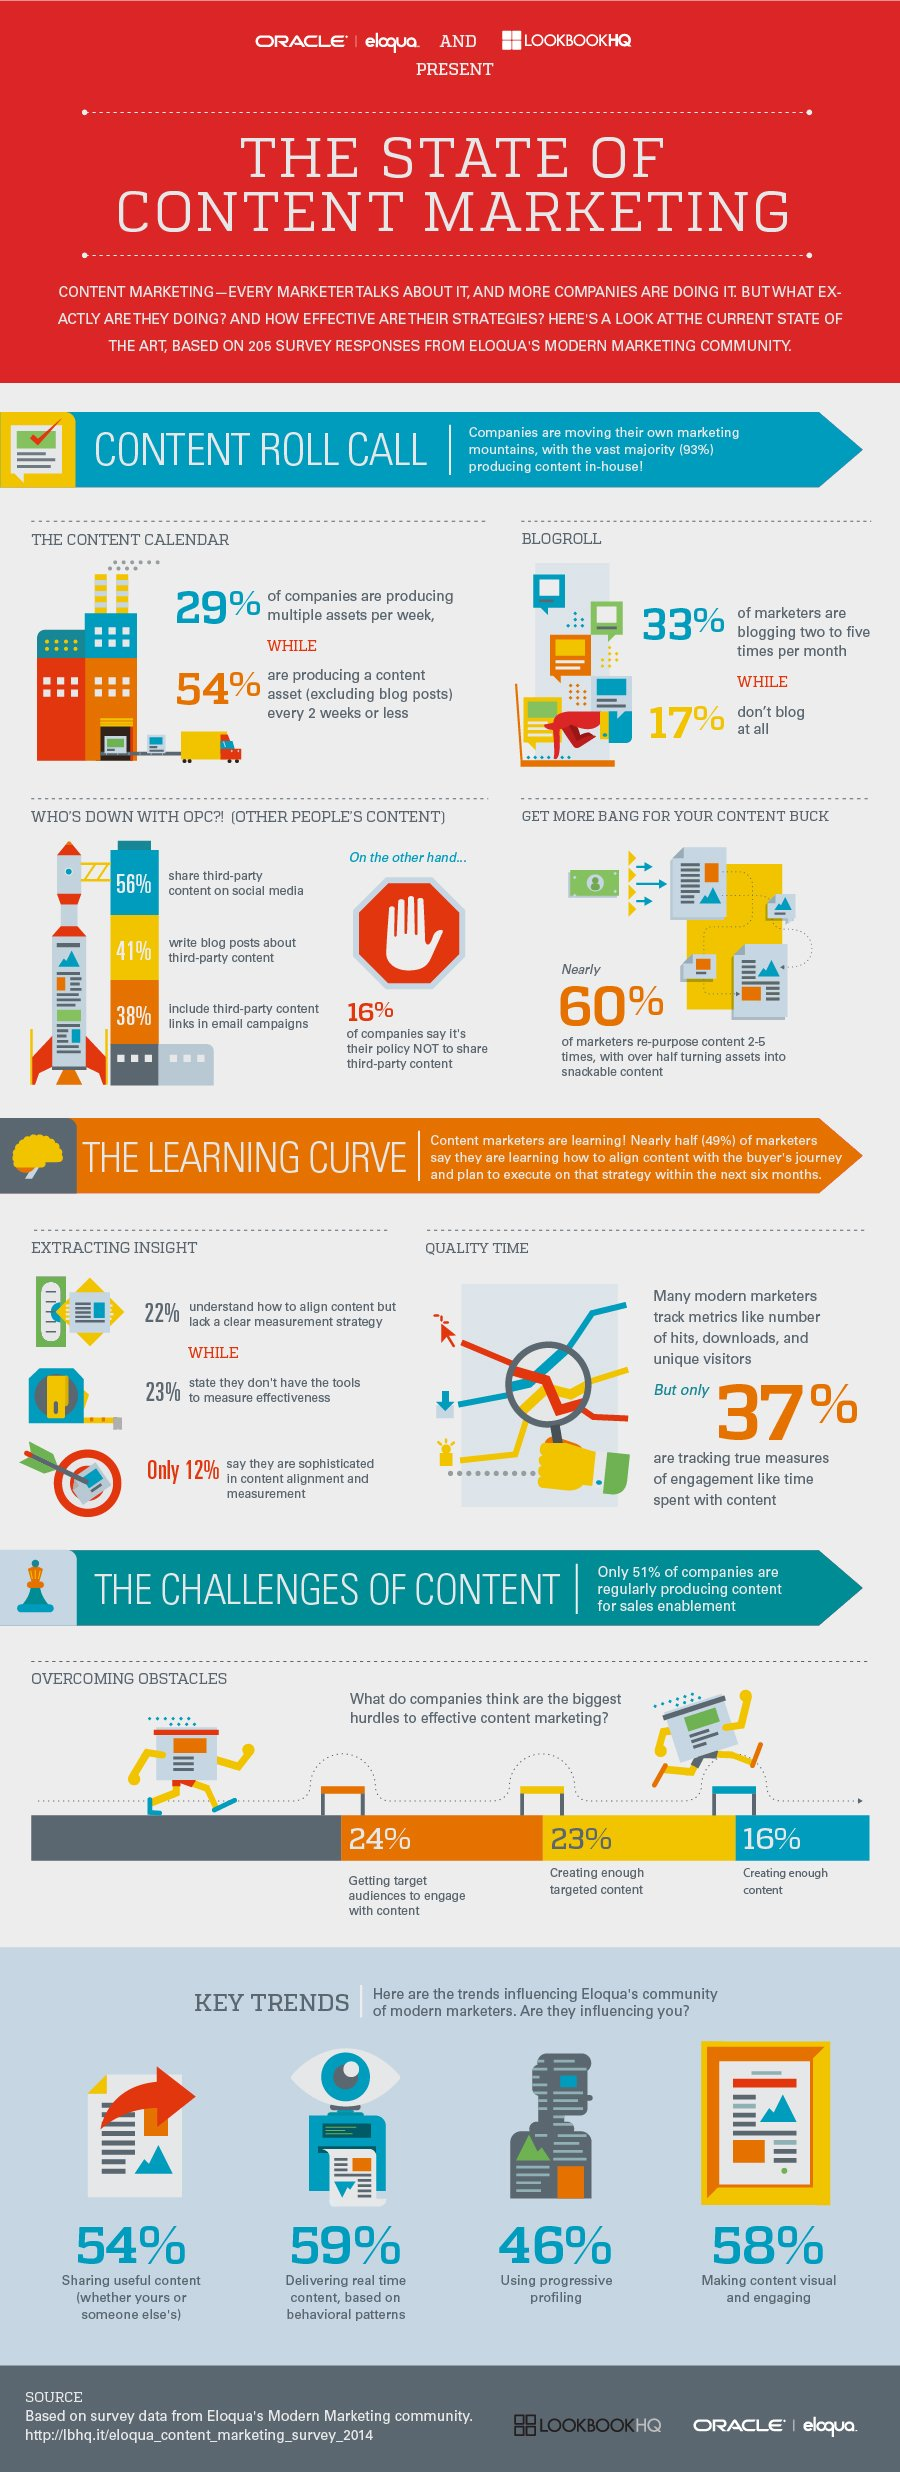 How Do Your Content Marketing Efforts Compare To Others? [Infographic]